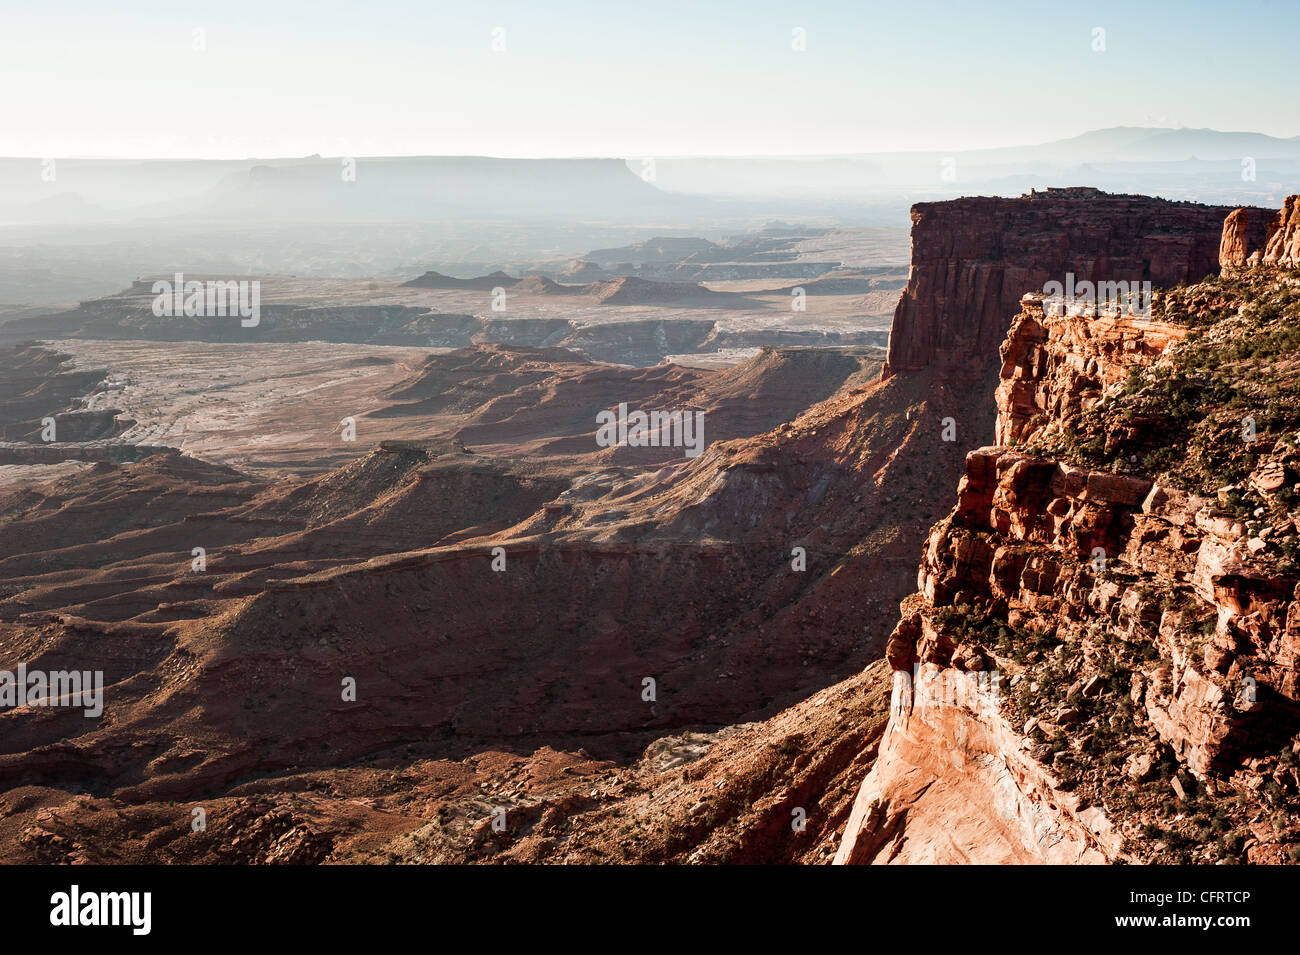 Scenic panorama from island of the sky, canyonlands national park, utah, usa - Stock Image